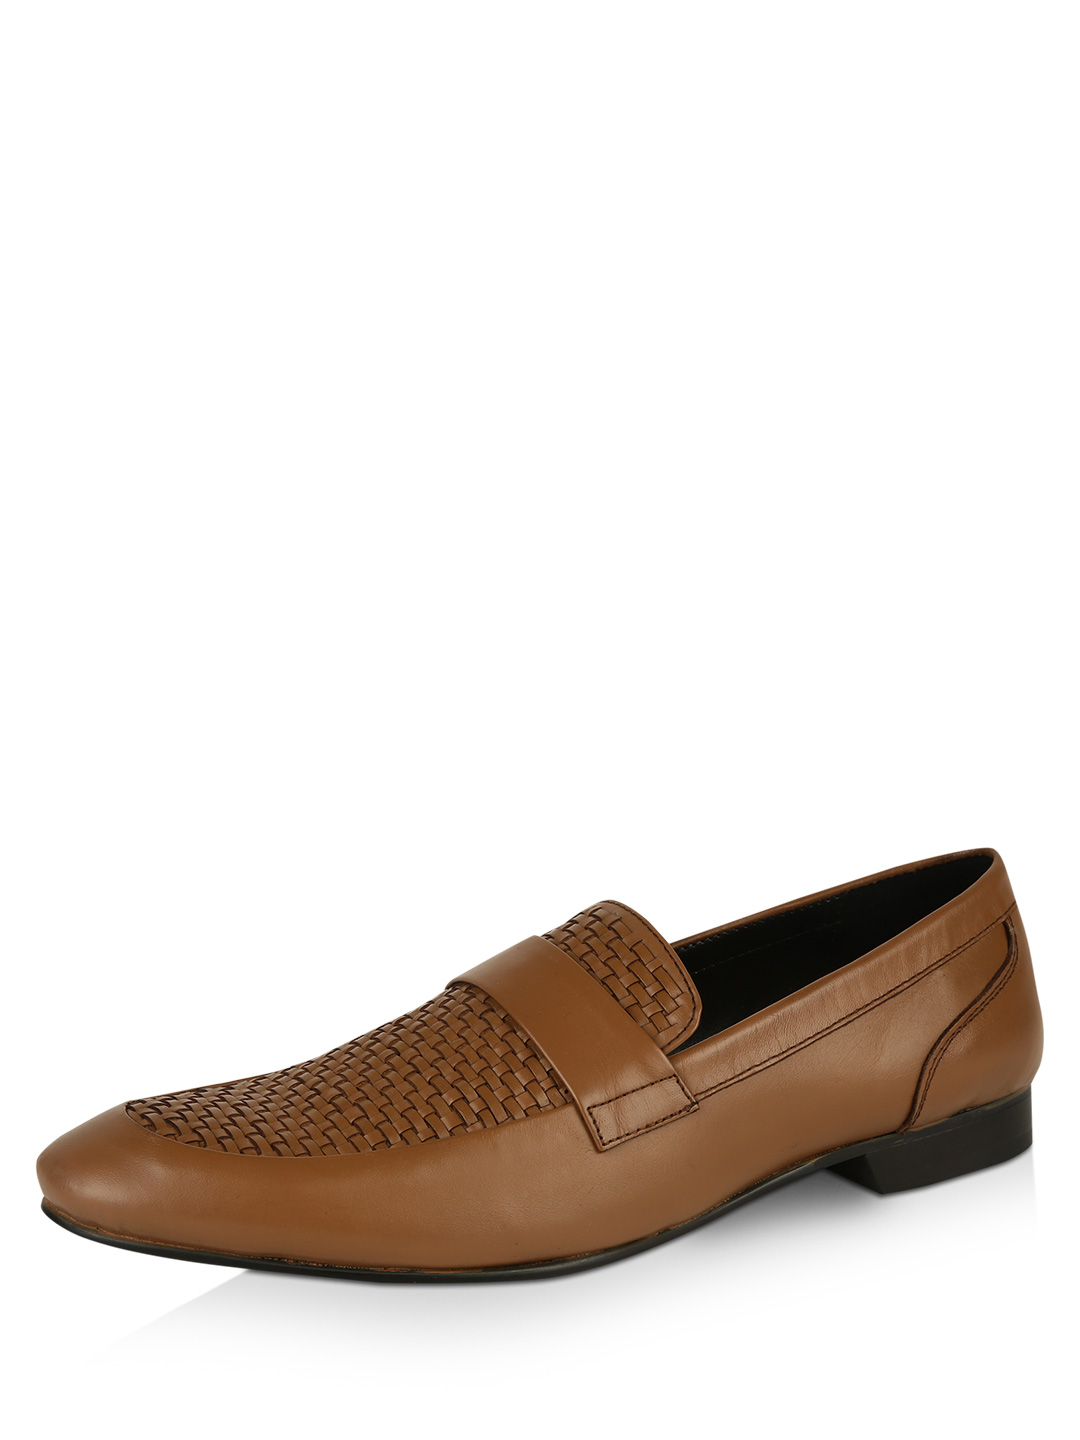 Famozi Camel Woven Loafers 1